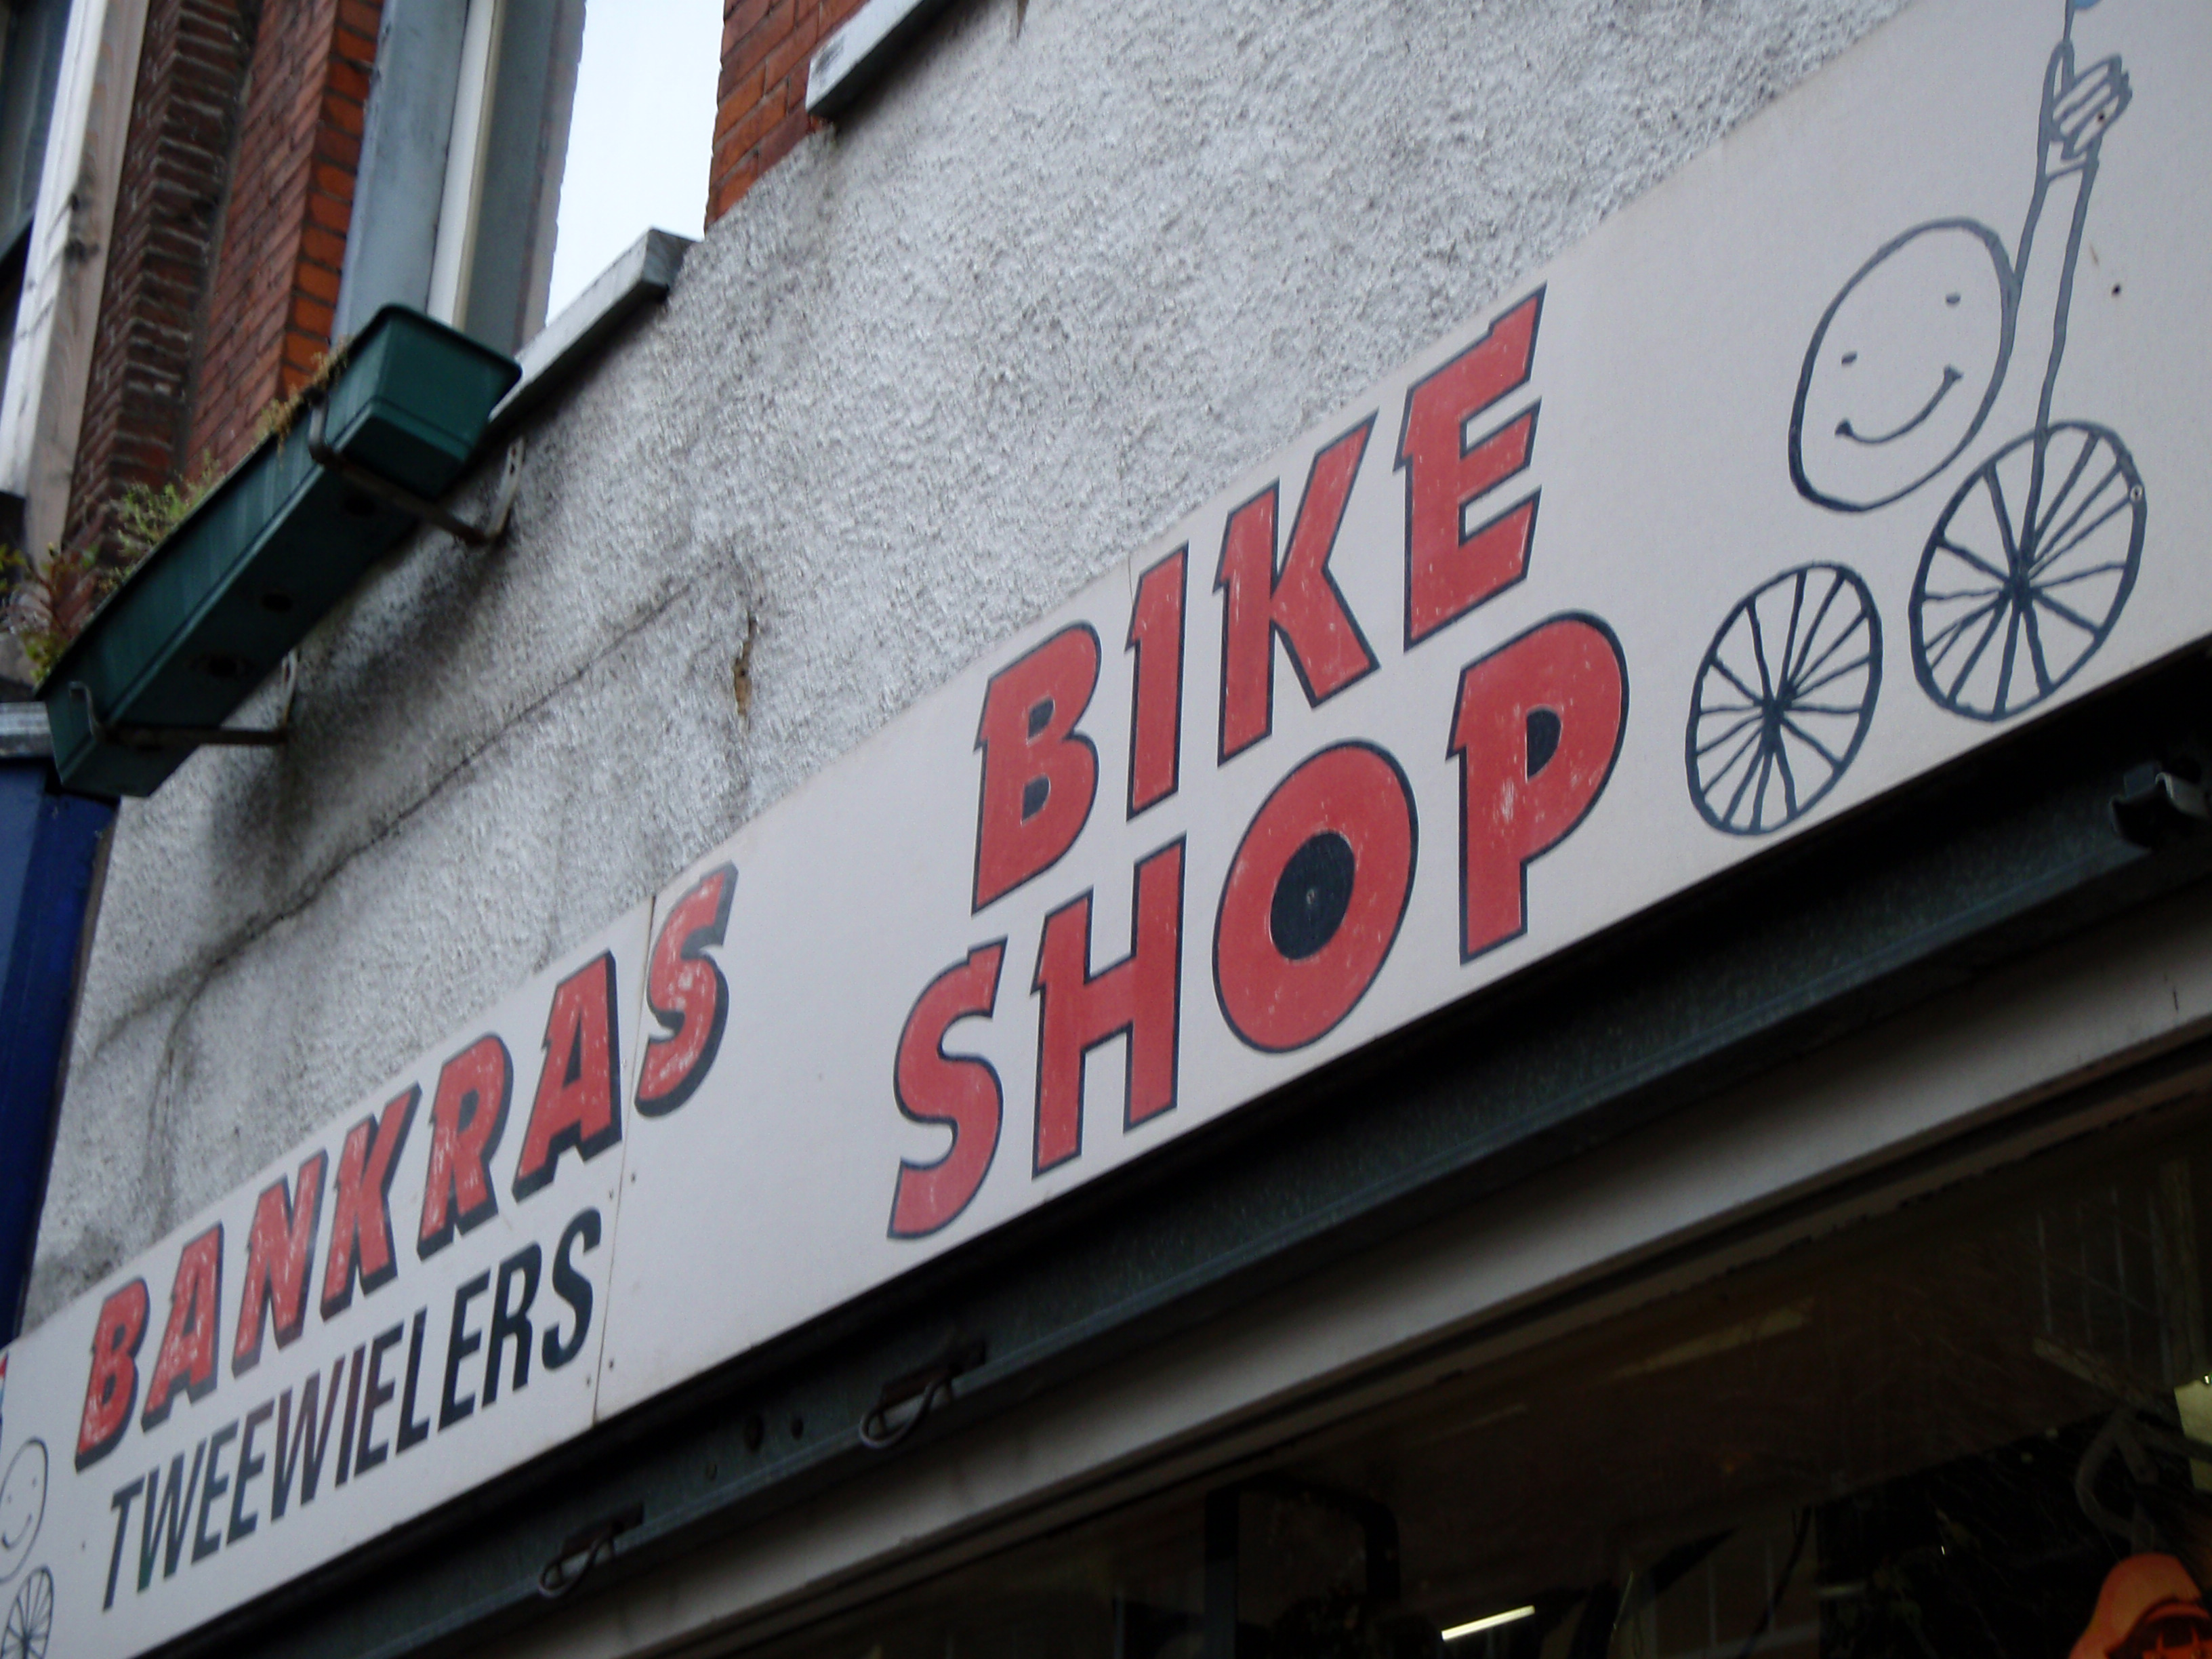 Bike Shop; Amsterdam, Netherlands; 2010